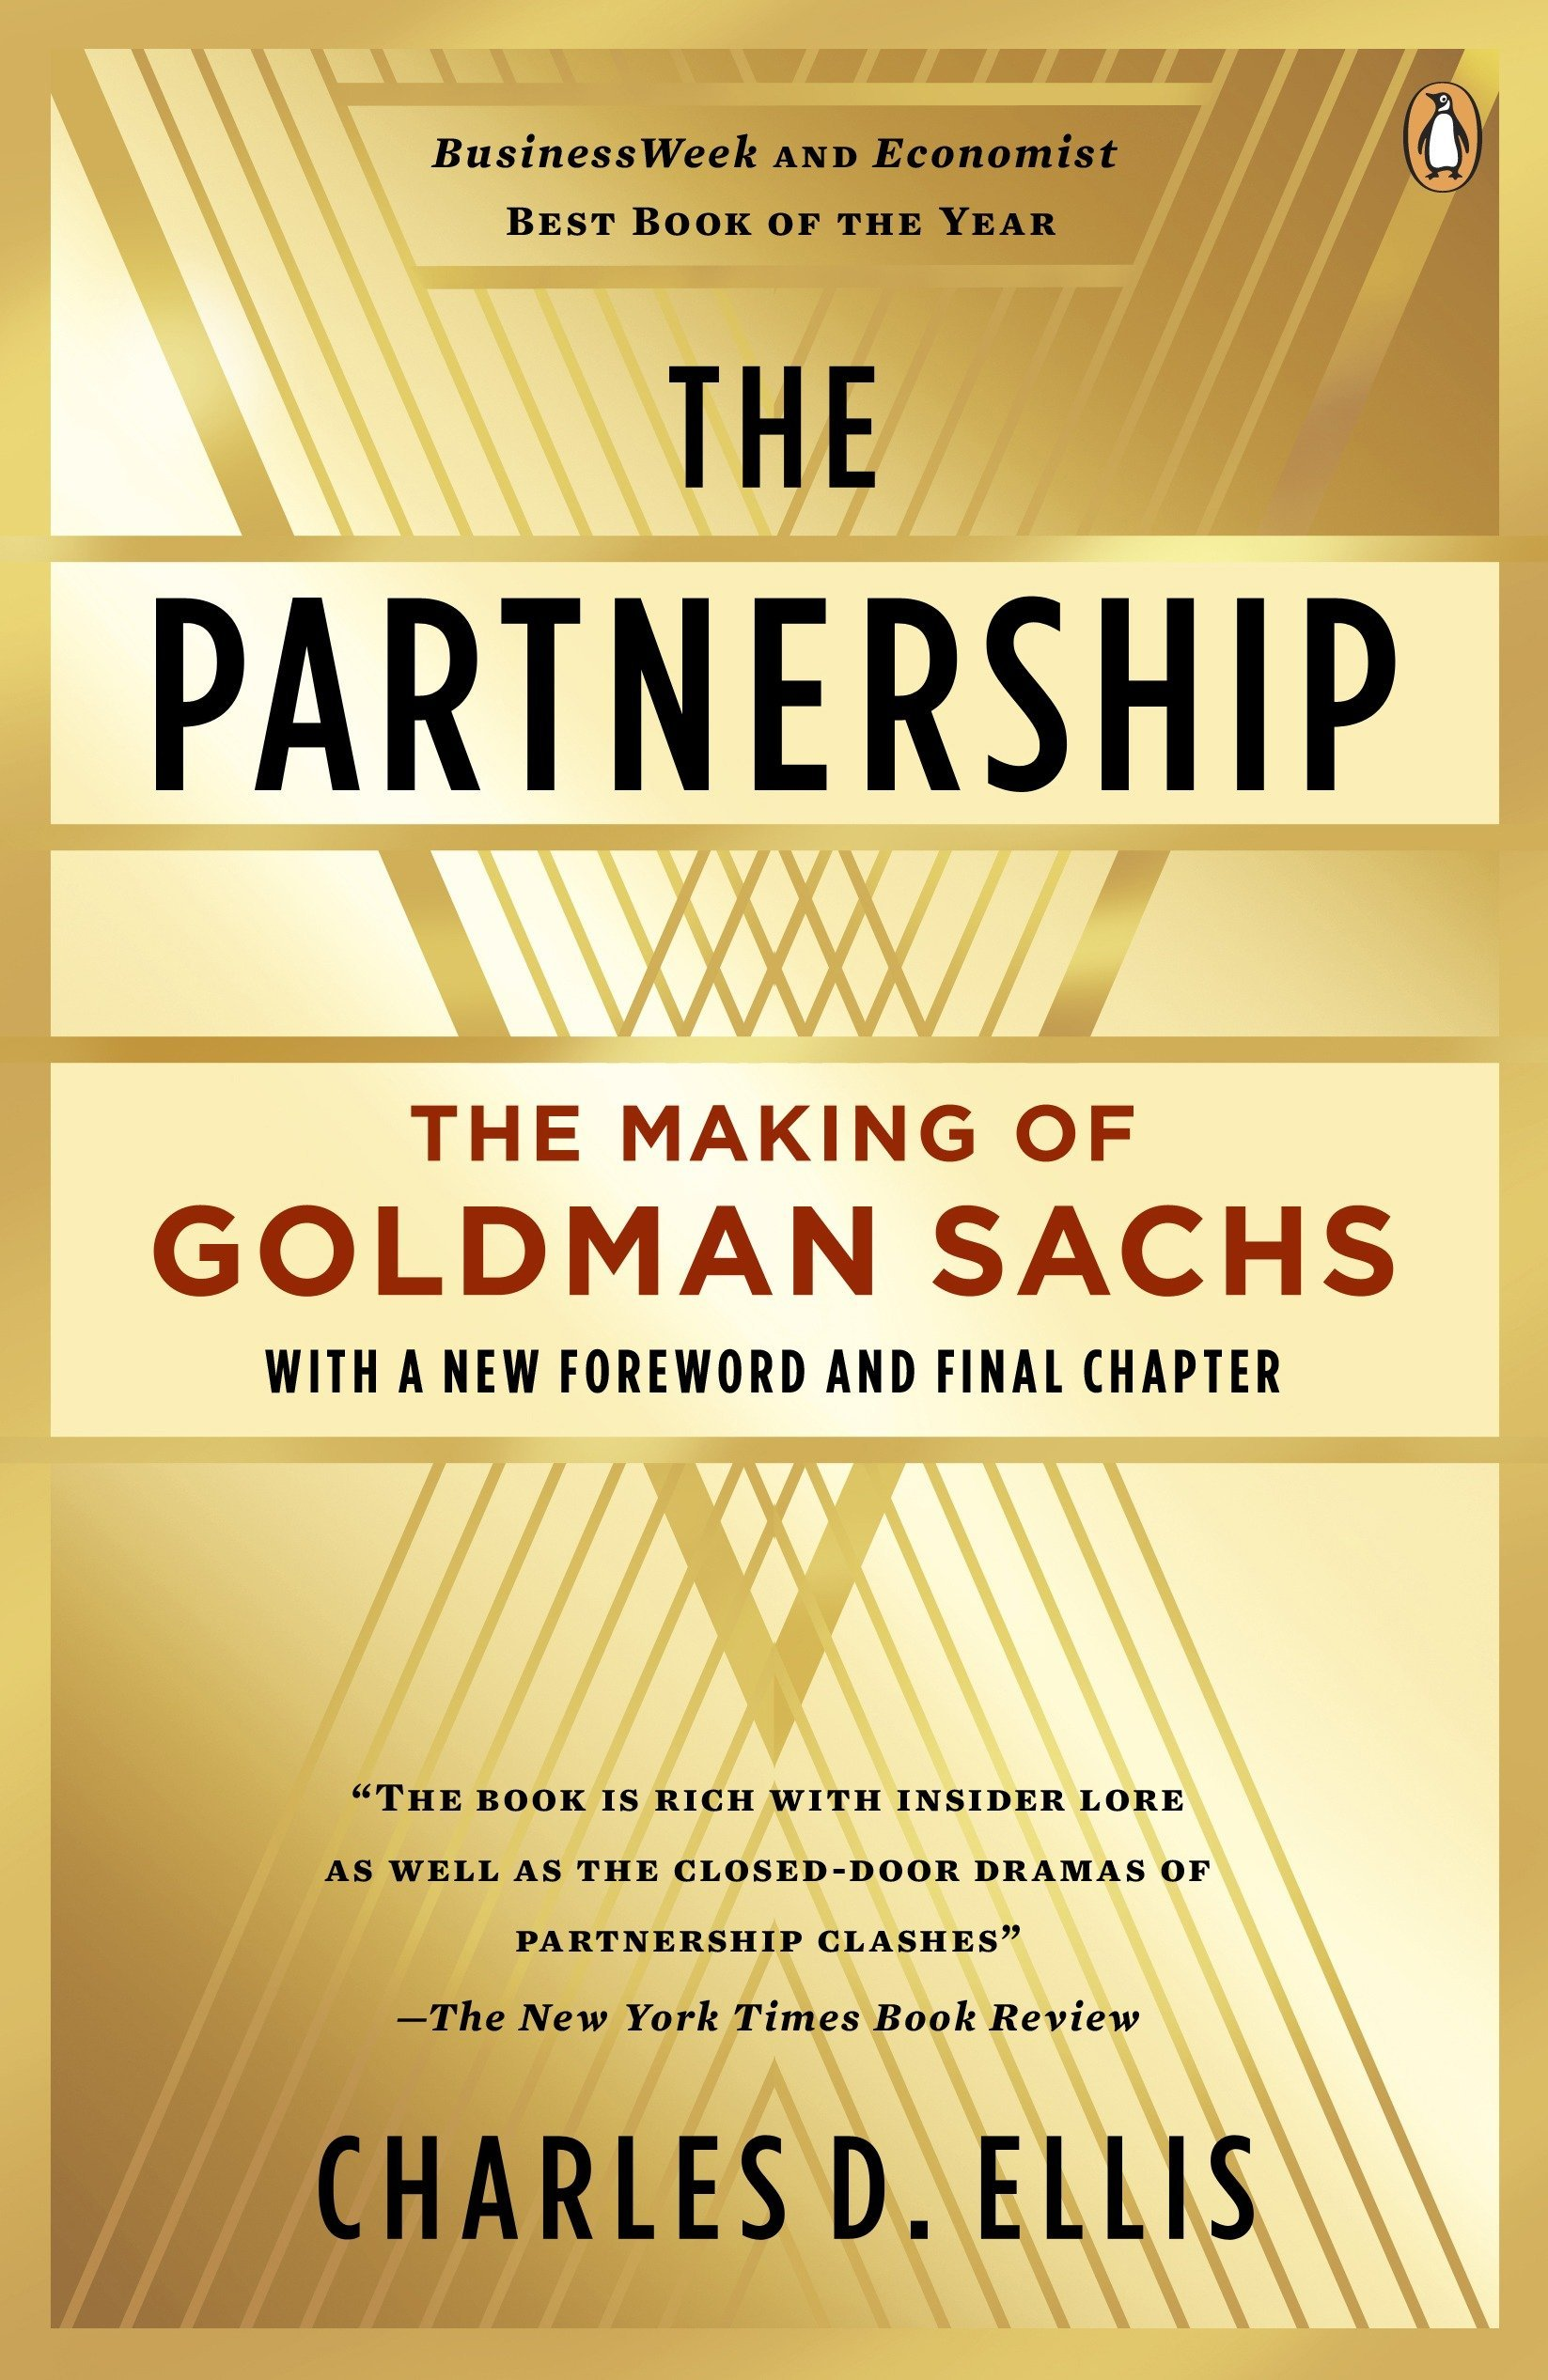 The partnership the making of goldman sachs livros na amazon the partnership the making of goldman sachs livros na amazon brasil 9780143116127 fandeluxe Choice Image